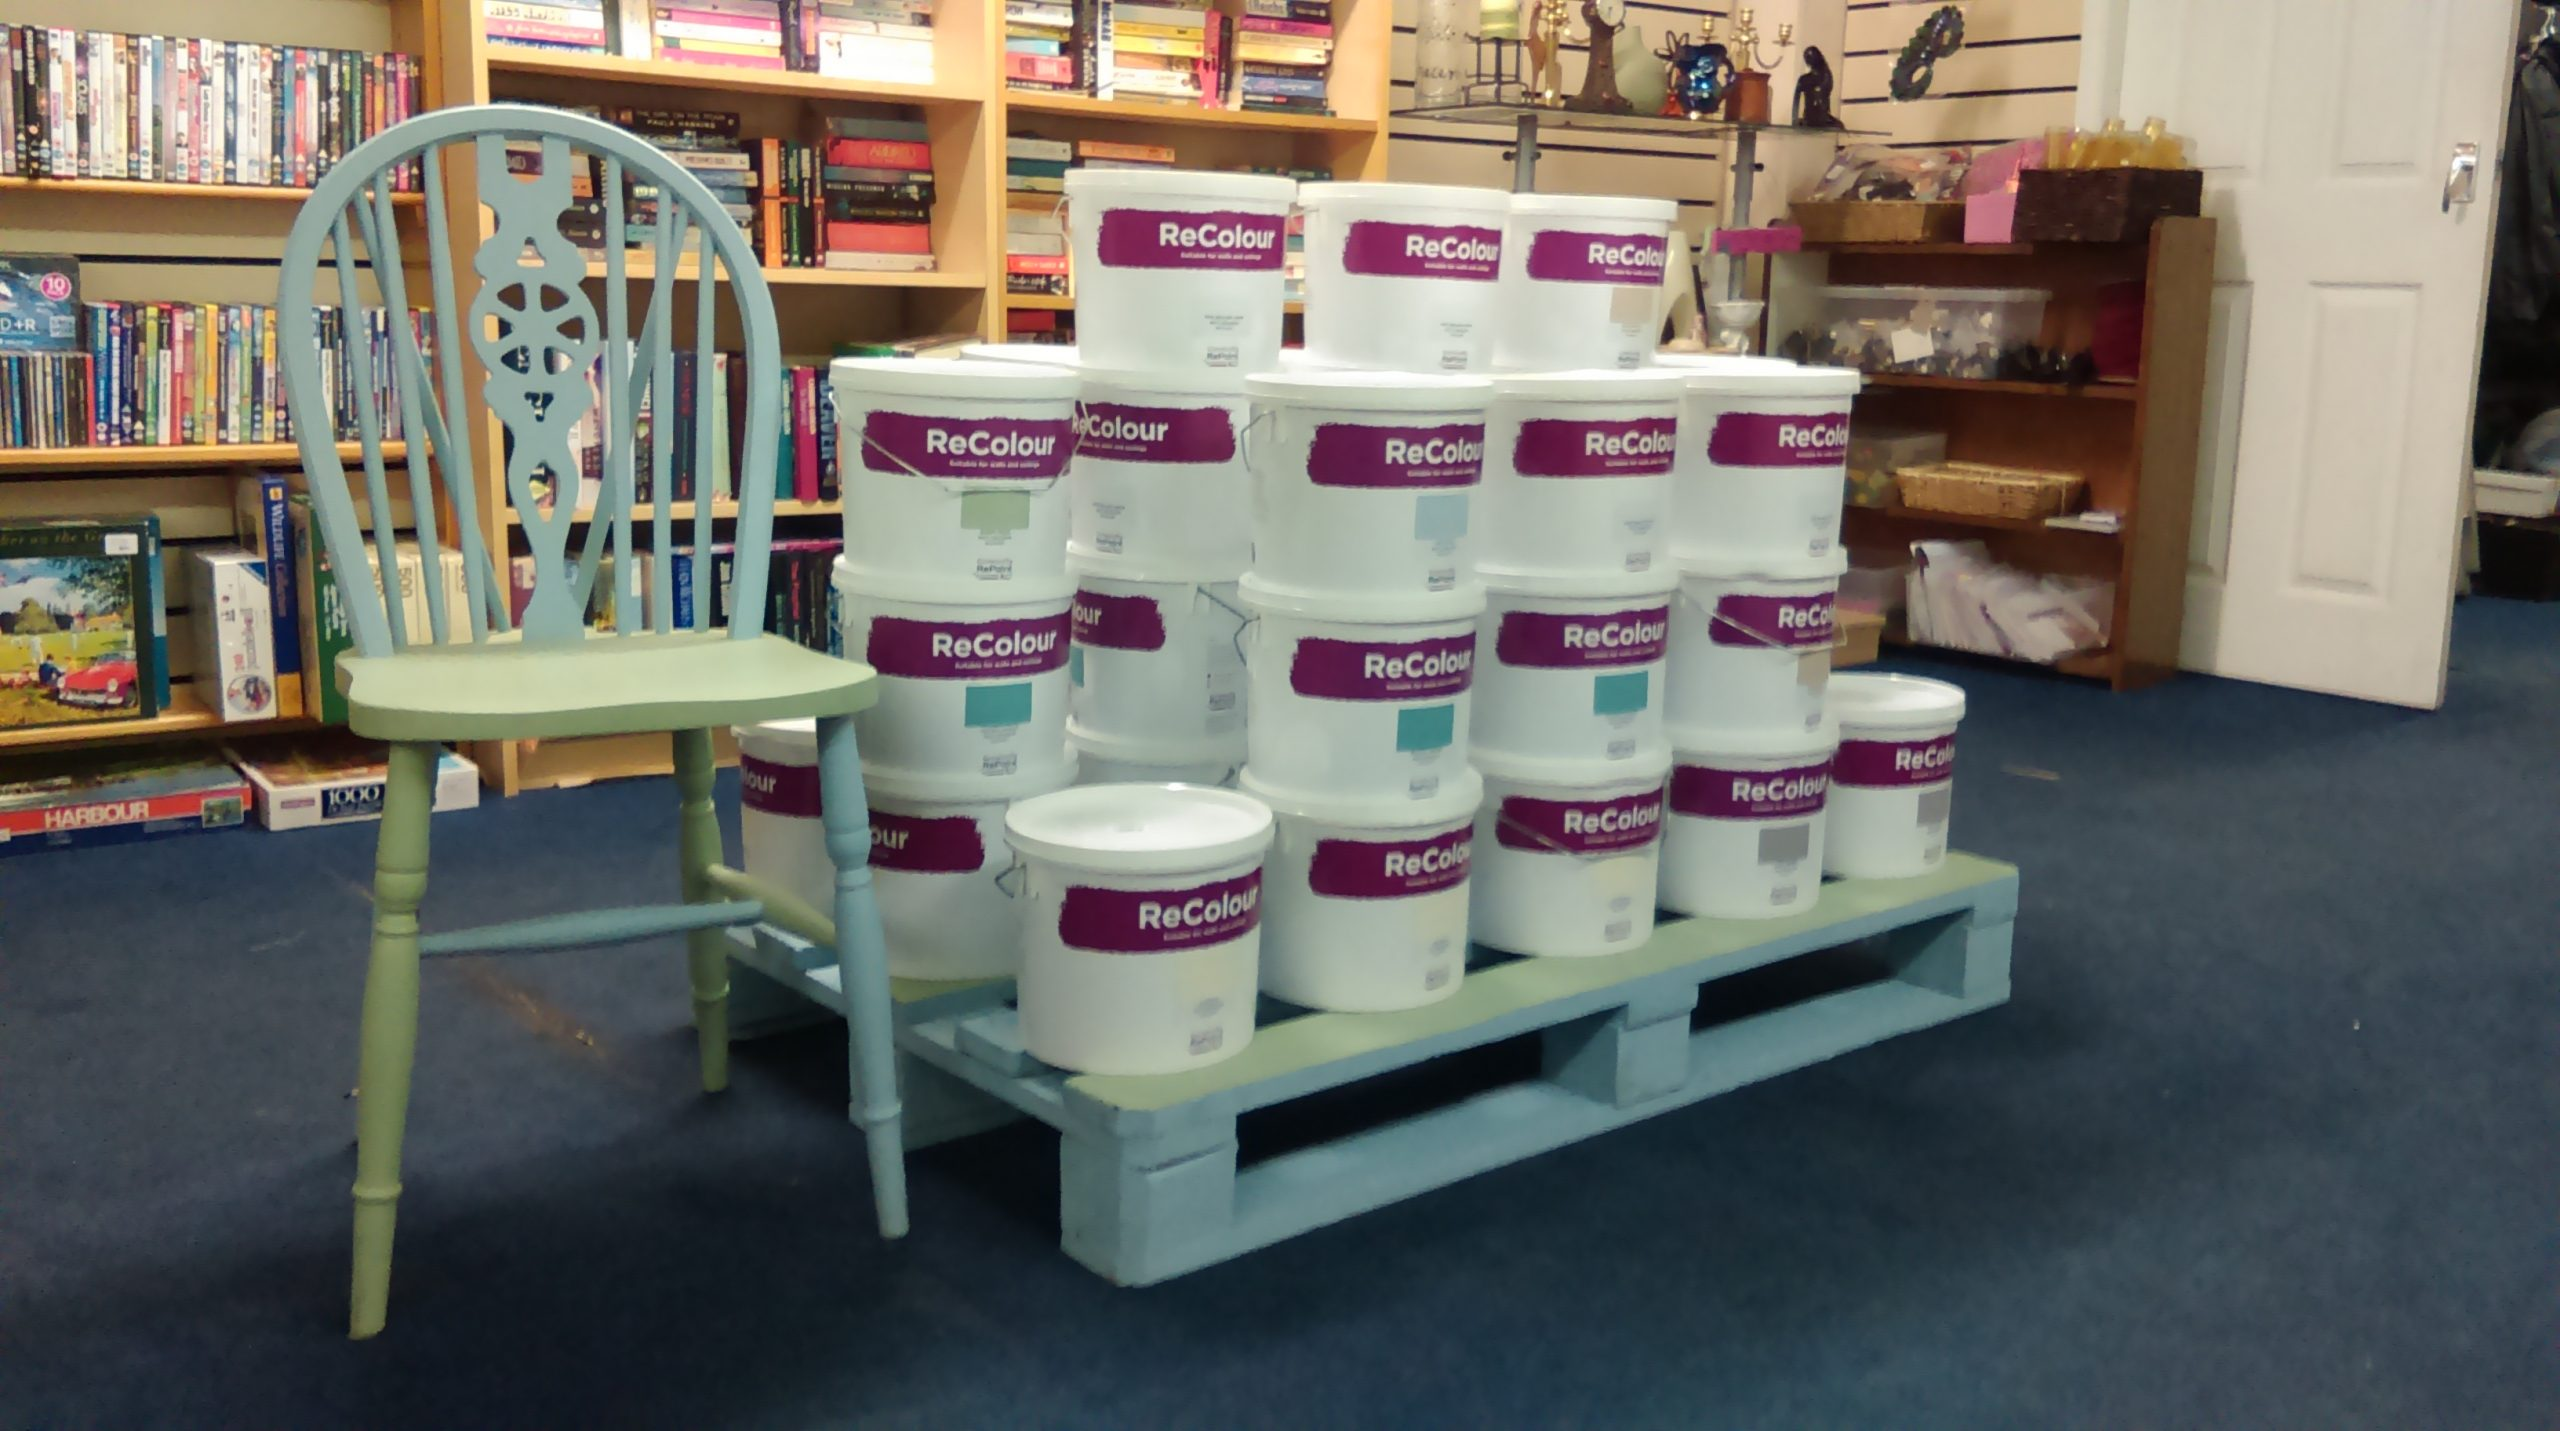 photos from a Community RePaint who stock ReColour, and have a paint display to show the range of different colours of emulsion.